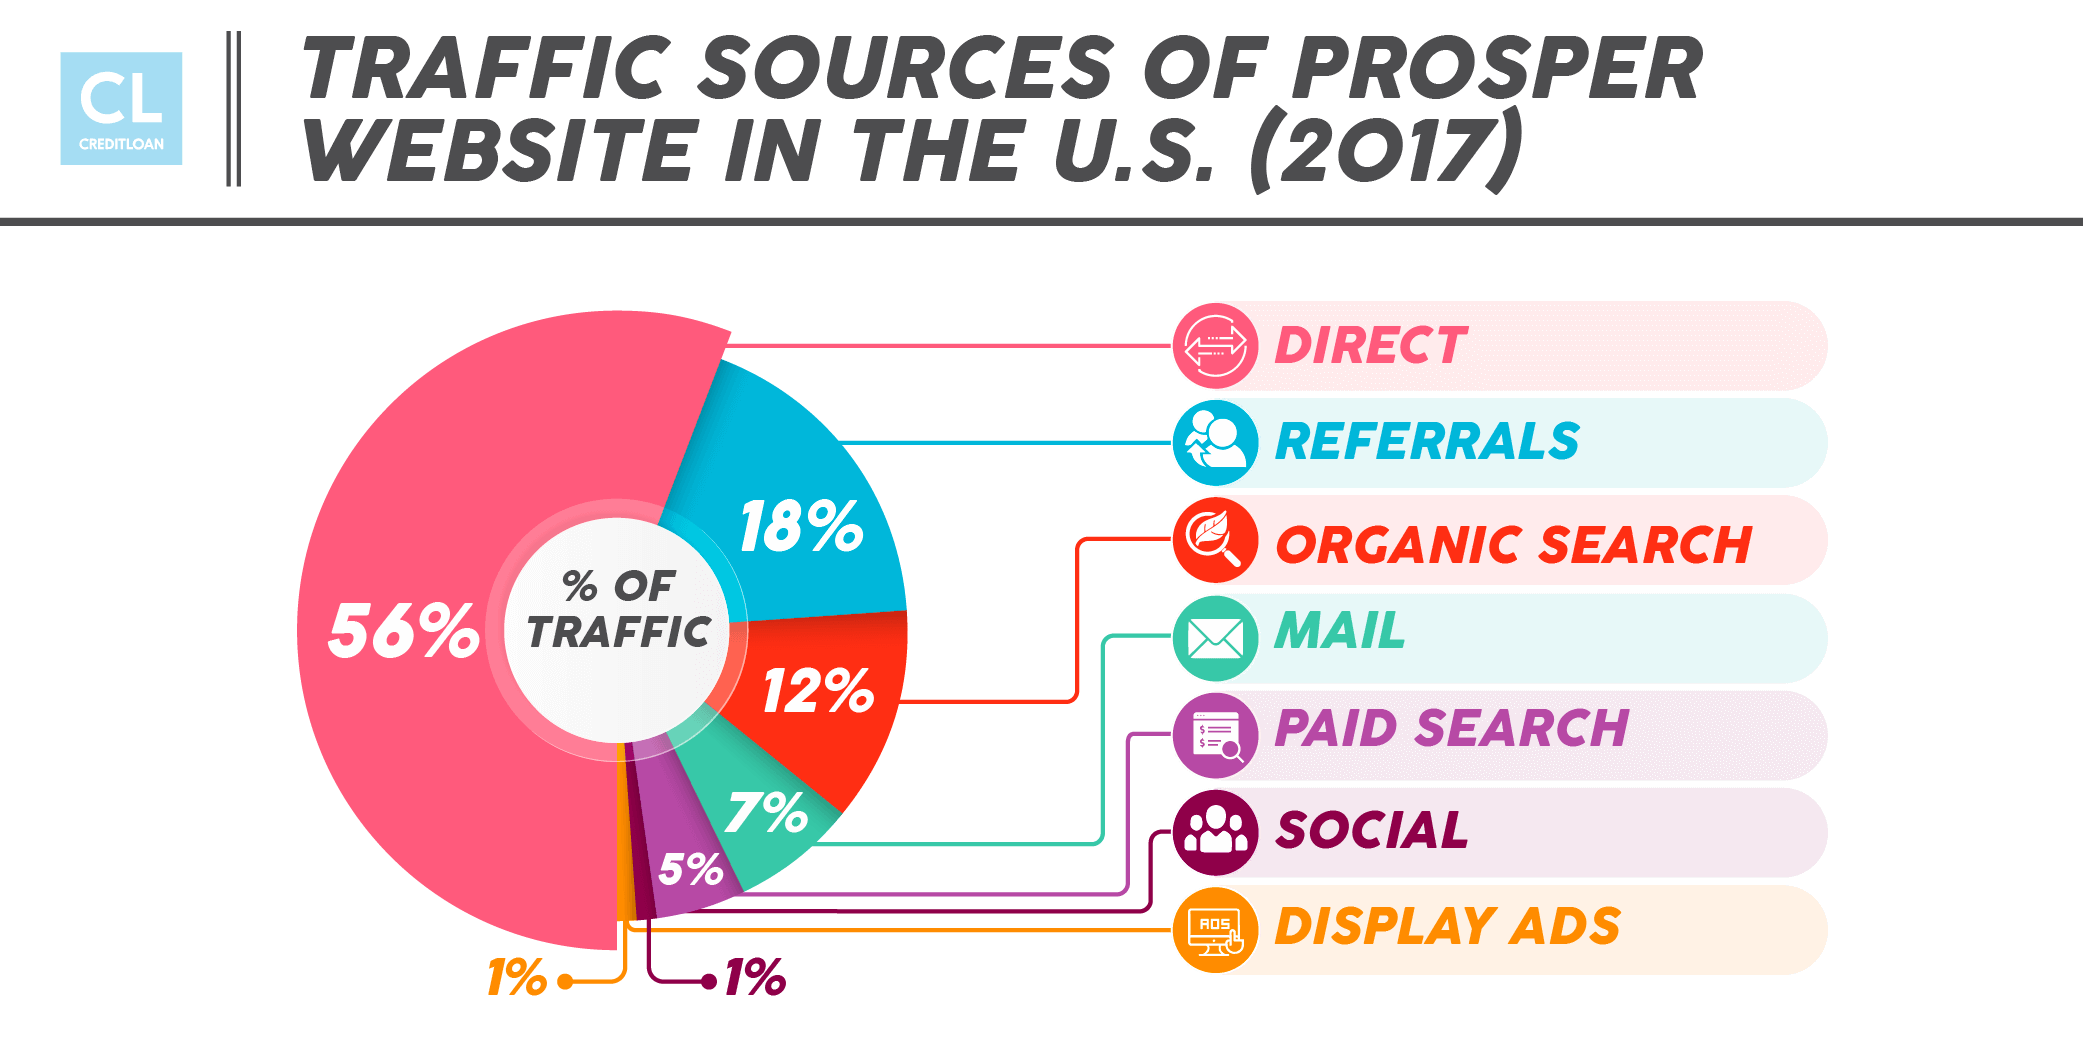 2017 Traffic Sources of Prosper Website in the U.S.